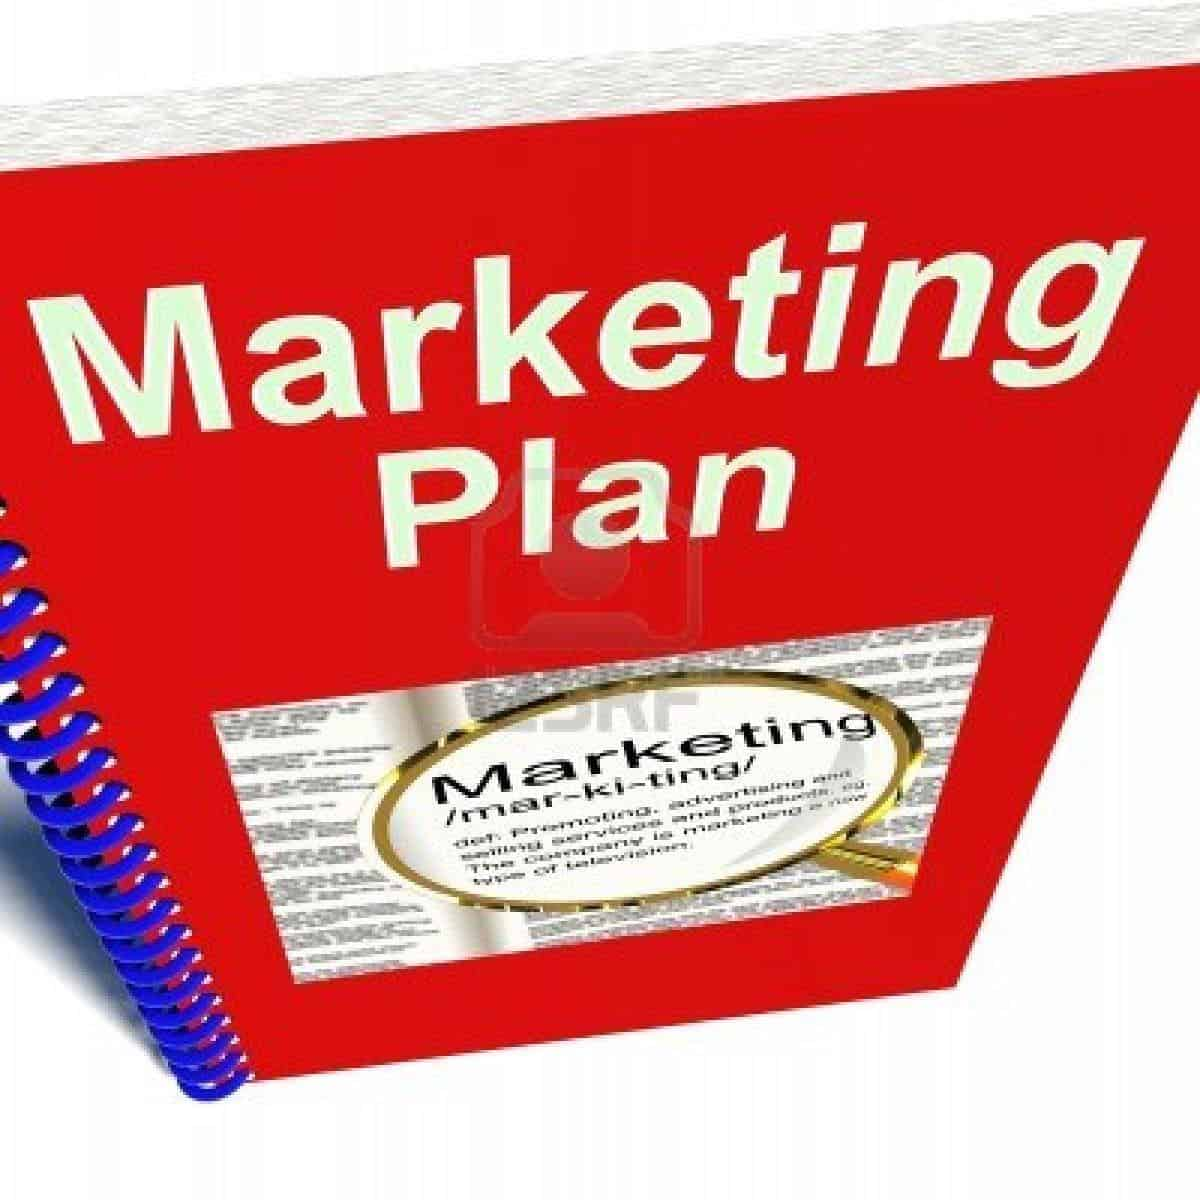 marketing plan Template for a basic marketing plan, including situation analysis, market segmentation, alternatives, recommended strategy, and implications of that strategy.